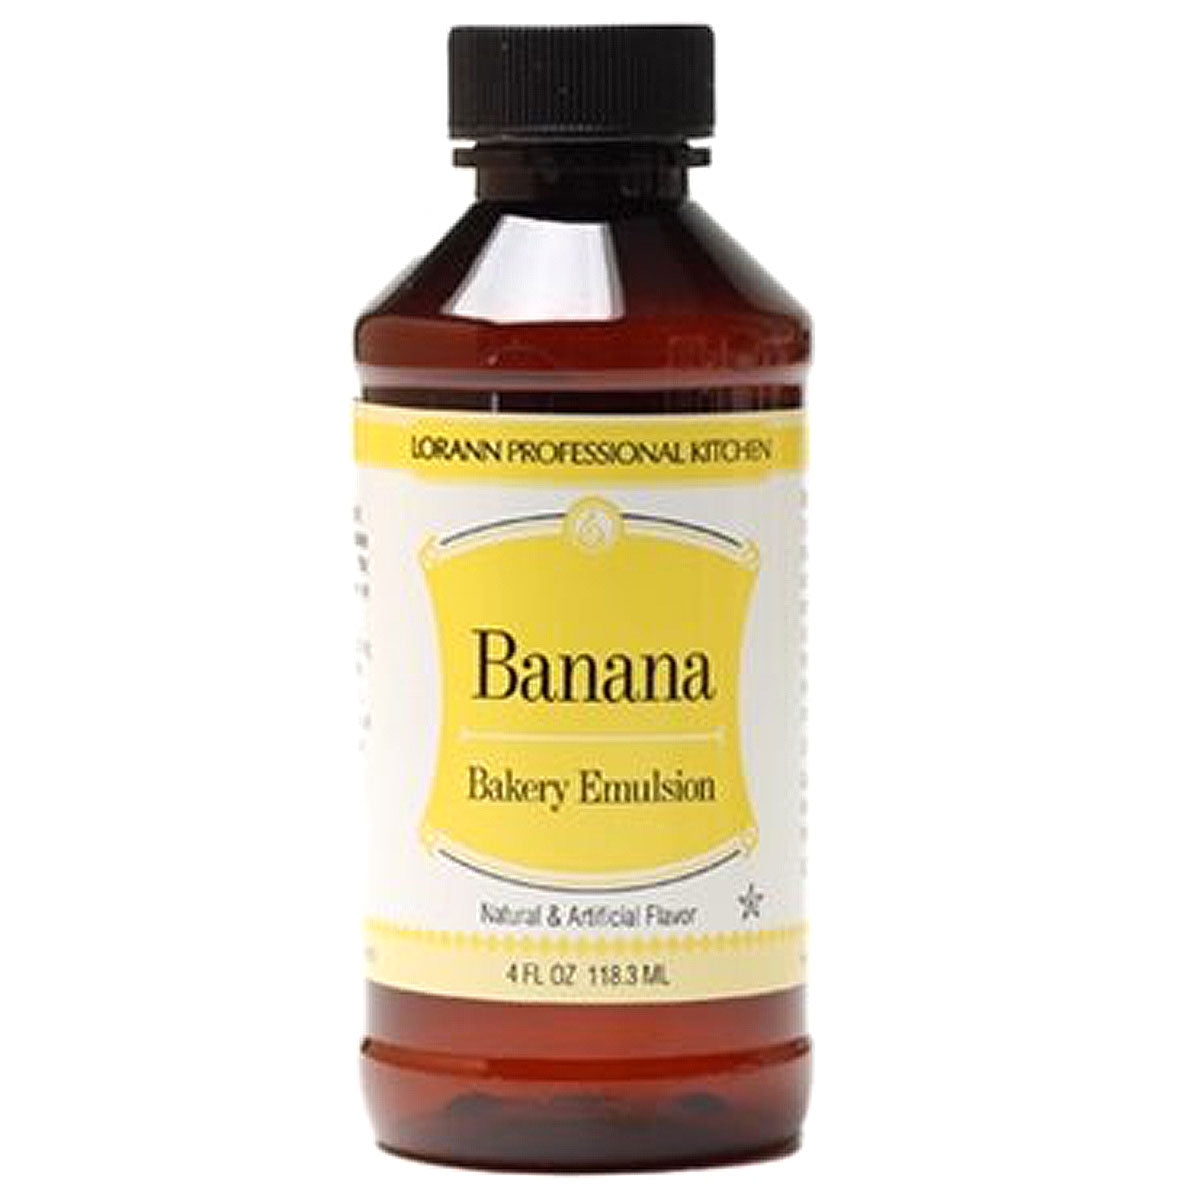 Lorann Emulsion • Banana 4oz